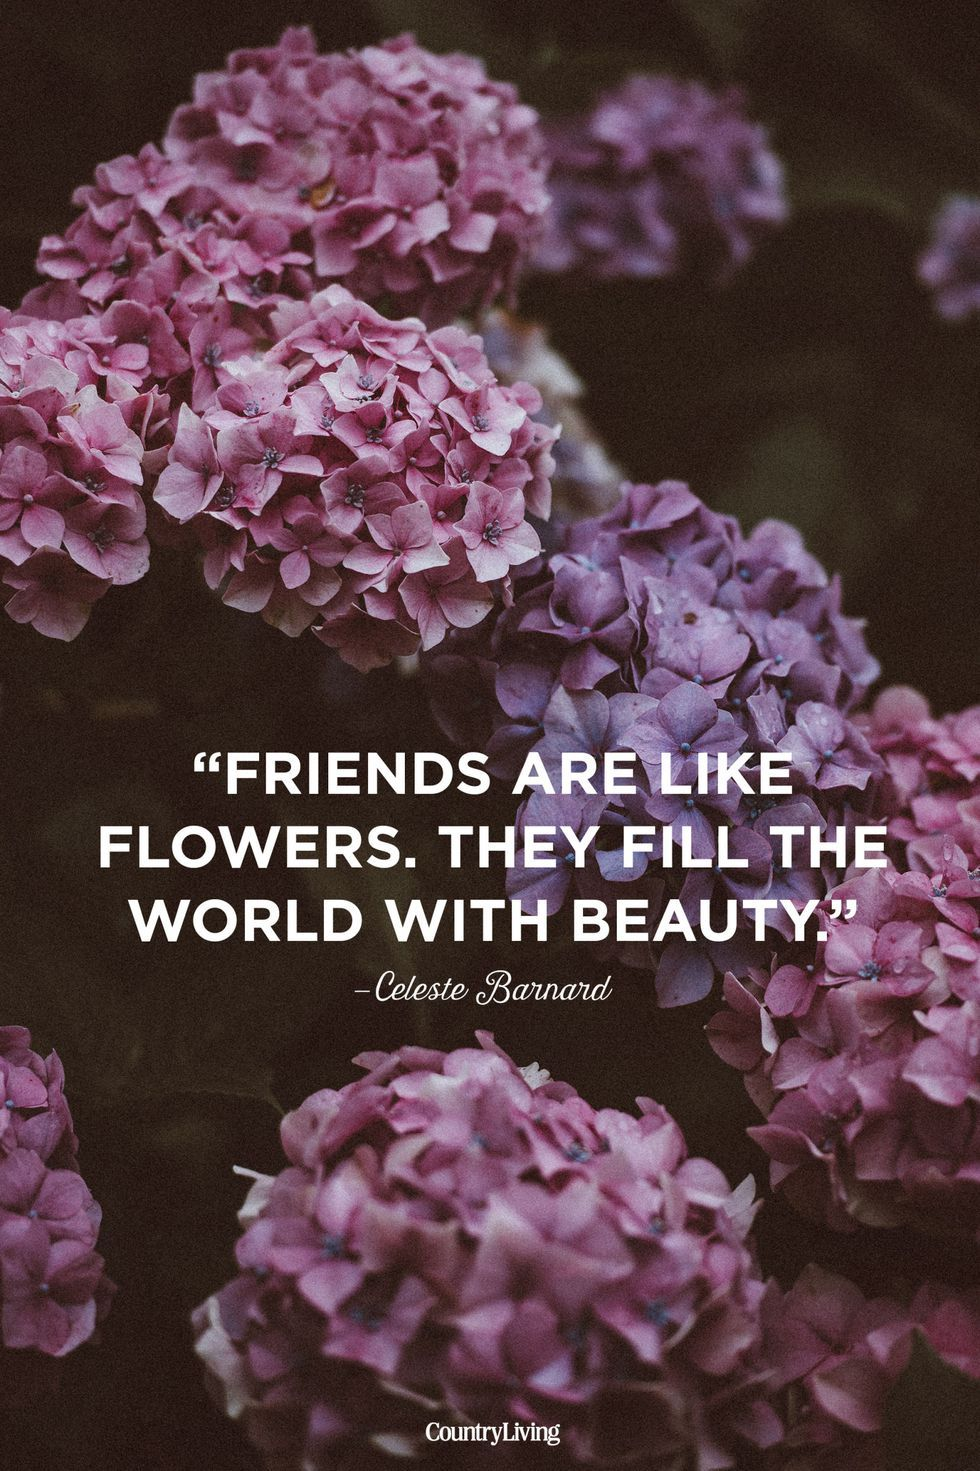 10 Inspiring Quotes To Share With Your Best Friends Cute Friendship Quotes Famous Friendship Quotes Short Friendship Quotes